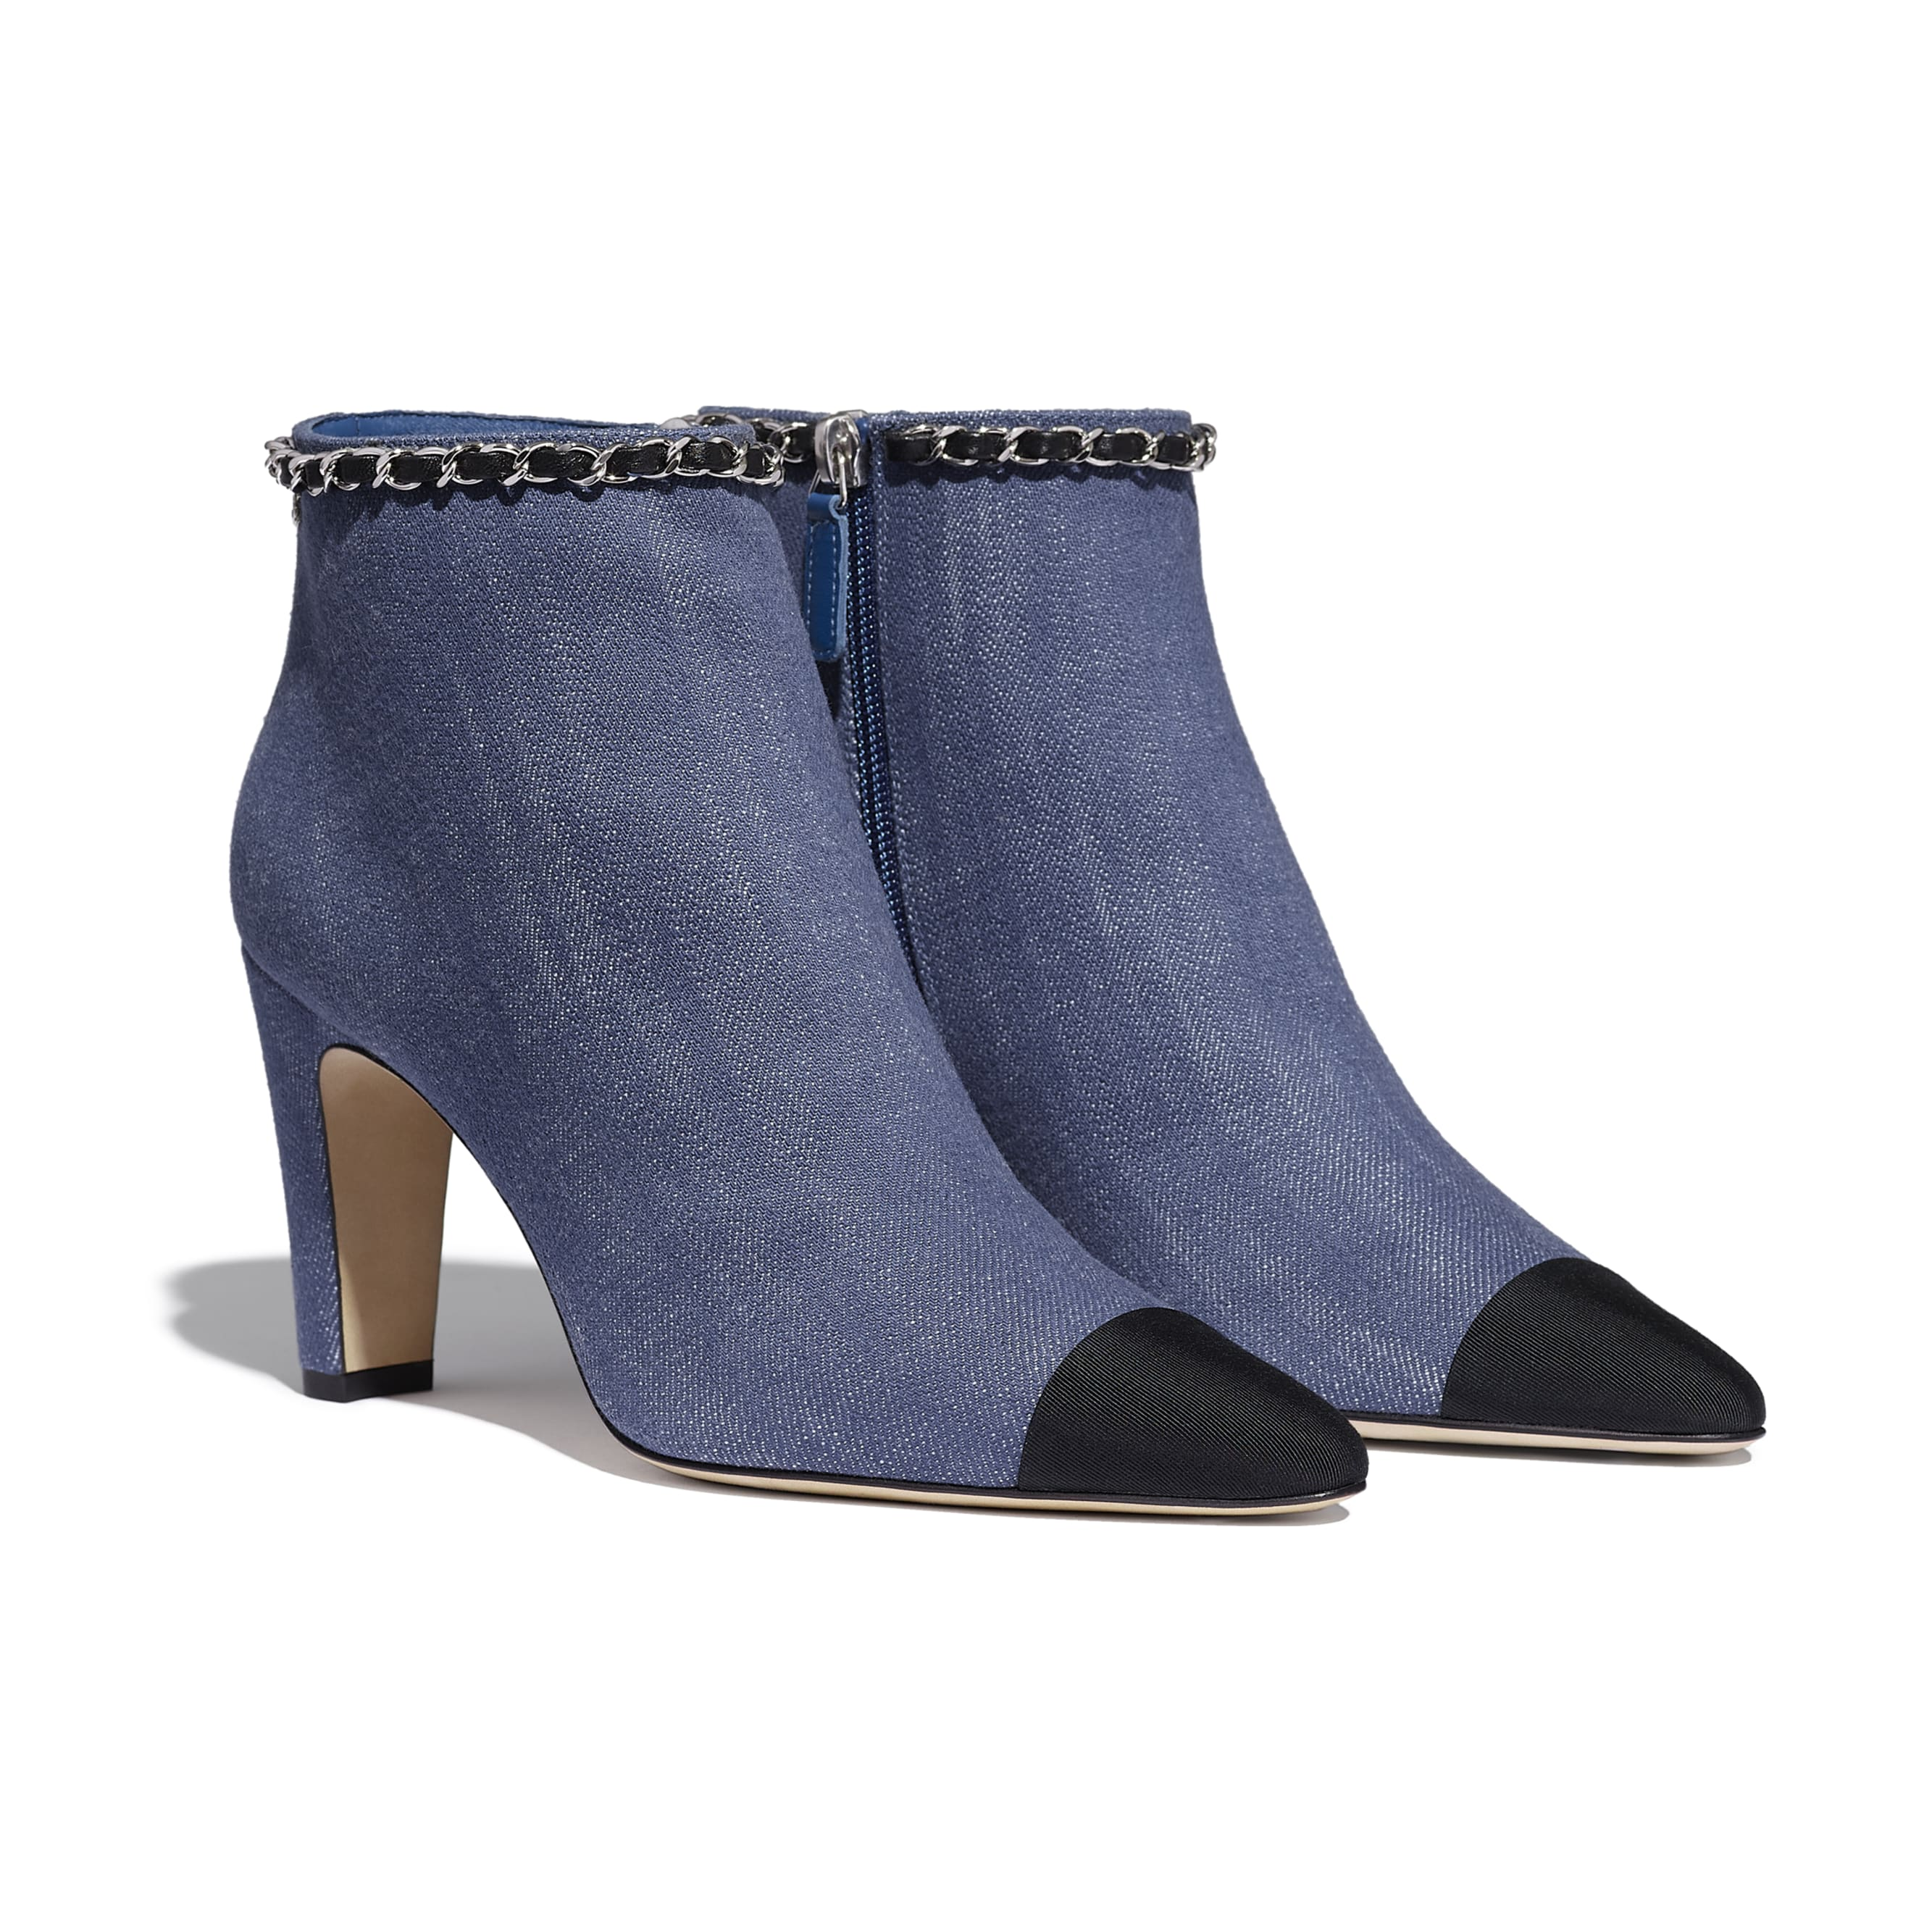 Ankle Boots - Blue & Black - Fabric - Alternative view - see standard sized version